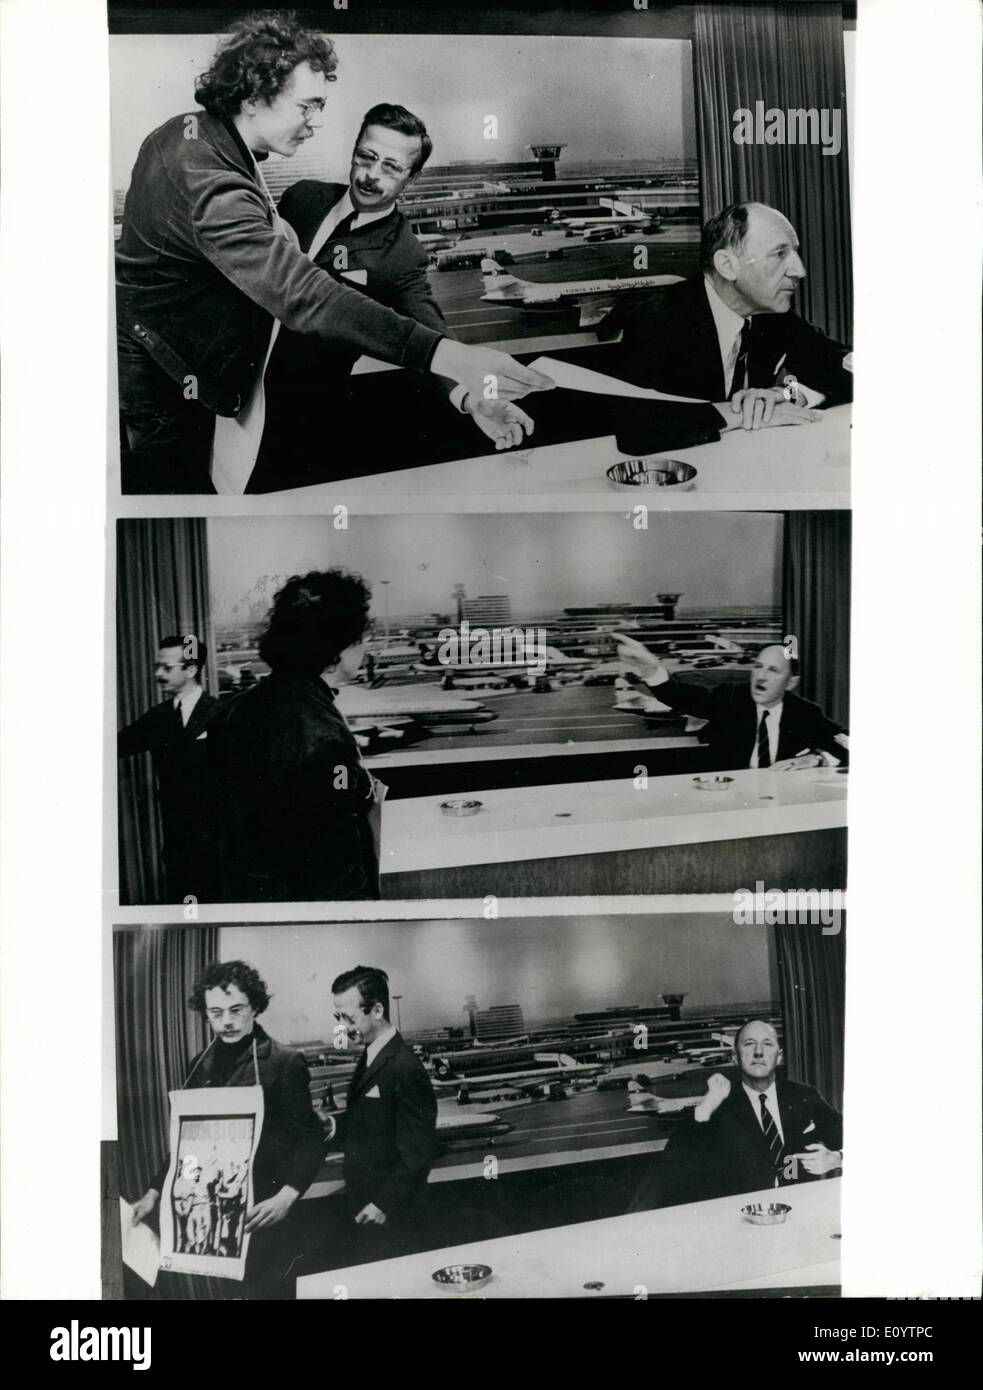 Jun. 06, 1971 - Demonstrator Angers Mr. Luns. During a press conference he gave on arrival at Schipol Airport, Amsterdam from New York yesterday, Mr. Luns, the Dutch Foreign Minister, who will be secretary general of the NATO Oct 1st, 1971 - was angered when a member of the Angola Committee, who protest against the attitude of Mr. Luns in respect of the Portugal Government's colonial politics, entered the press room and handed a manifesto to Mr. Luns. Photo Shows: (Top picture) The Demonstrators hands the manifesto to Mr. Luns, who later crushed it. (Middle picture) With outstretched hand Mr - Stock Image